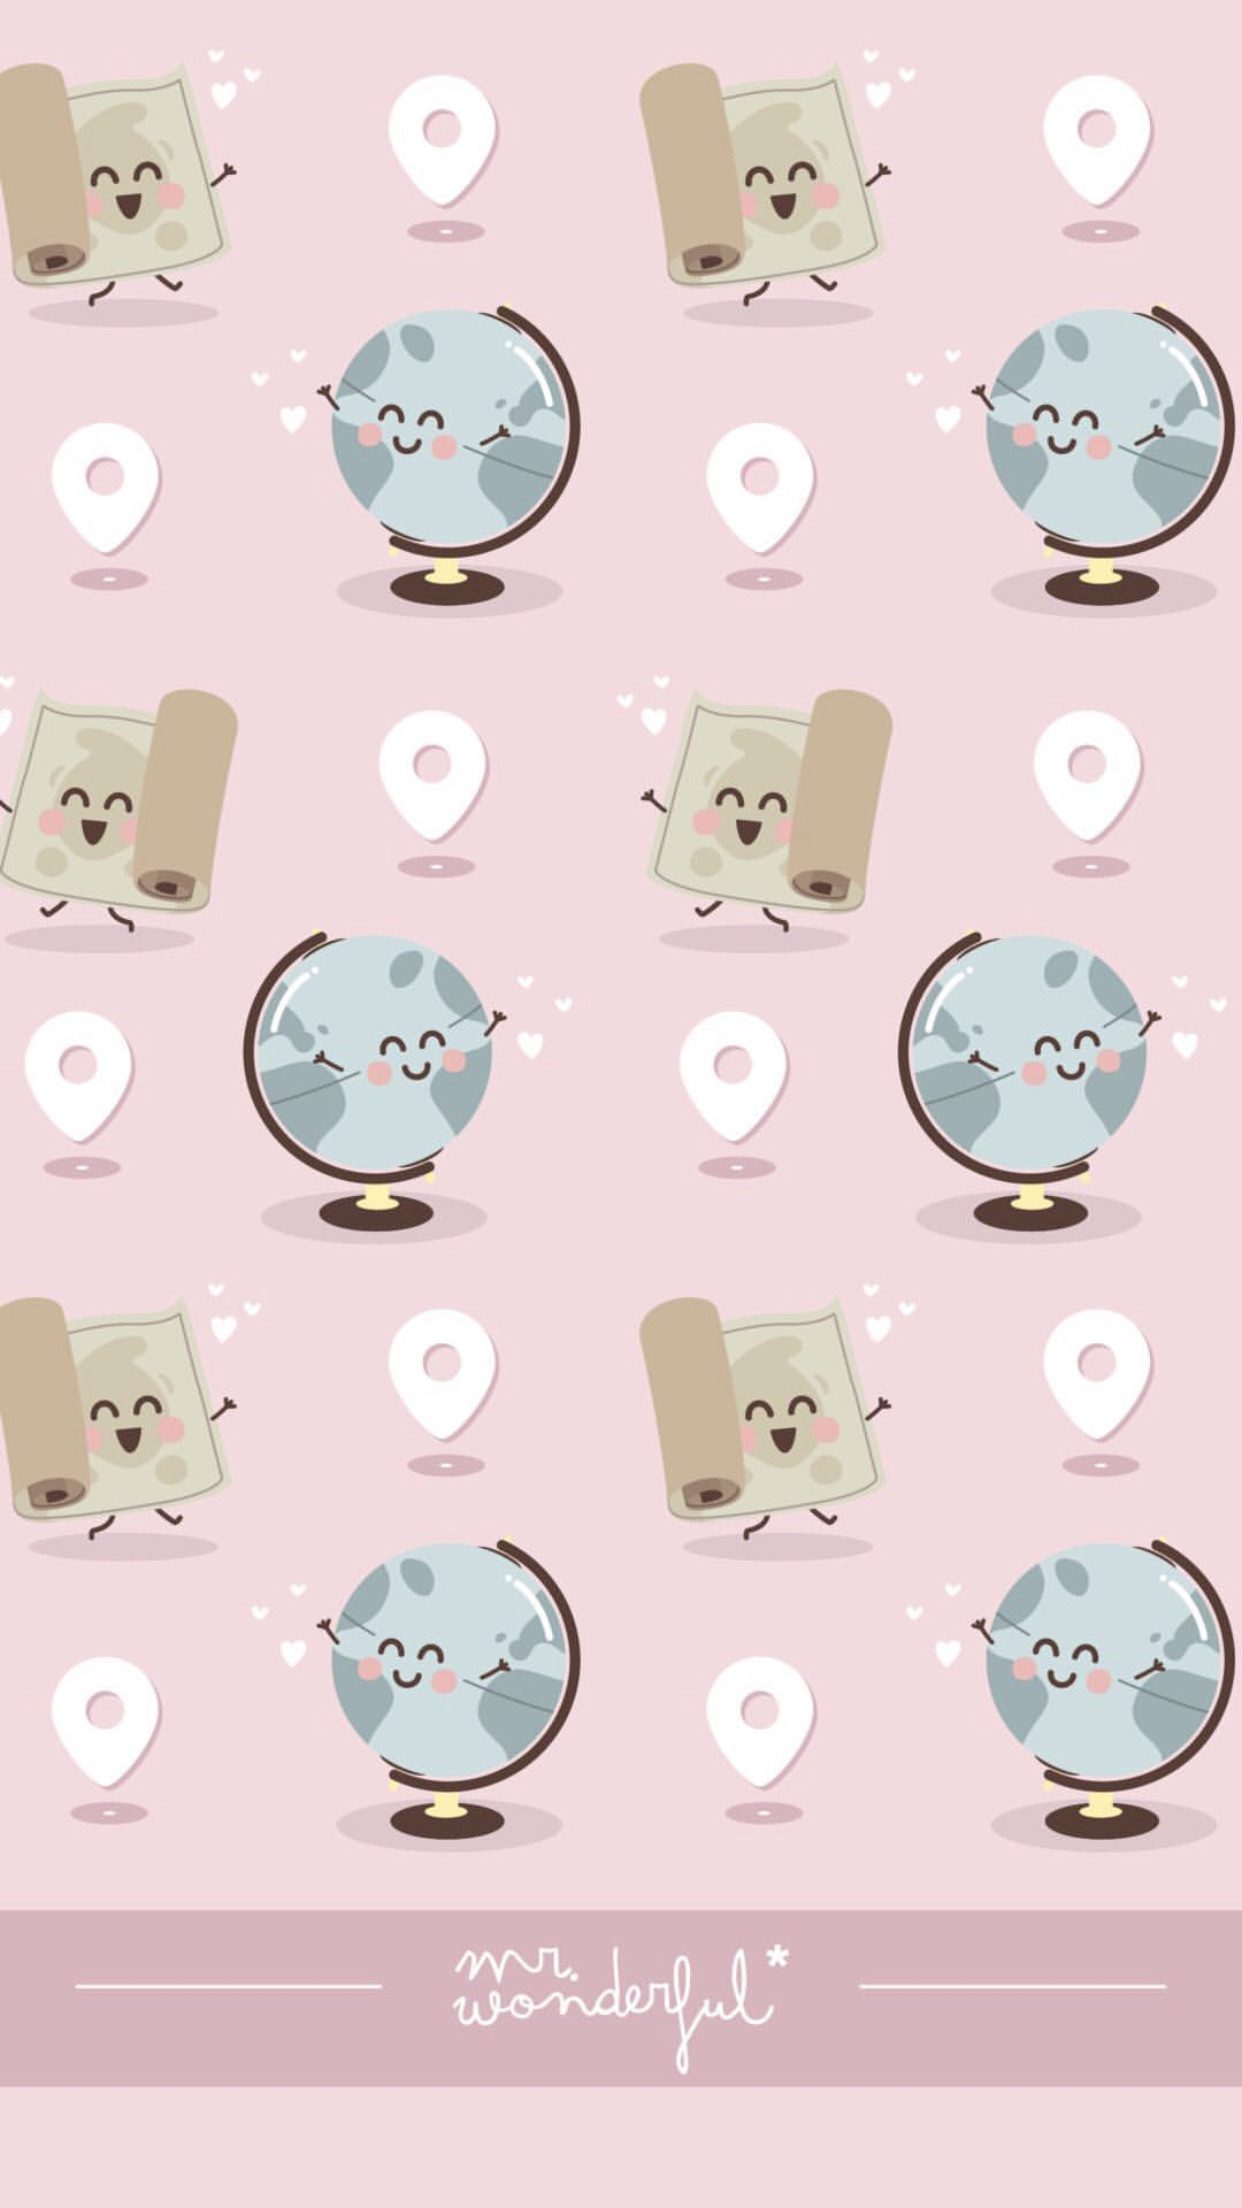 fondos de pantalla, fondo de pantalla, fondo de pantalla divertido, fondo de pantalla femenino, girly backgrounds, cool background, colorful backfround, fondo de pantalla patron, pattern, fondo de pantalla del mundo, world background.